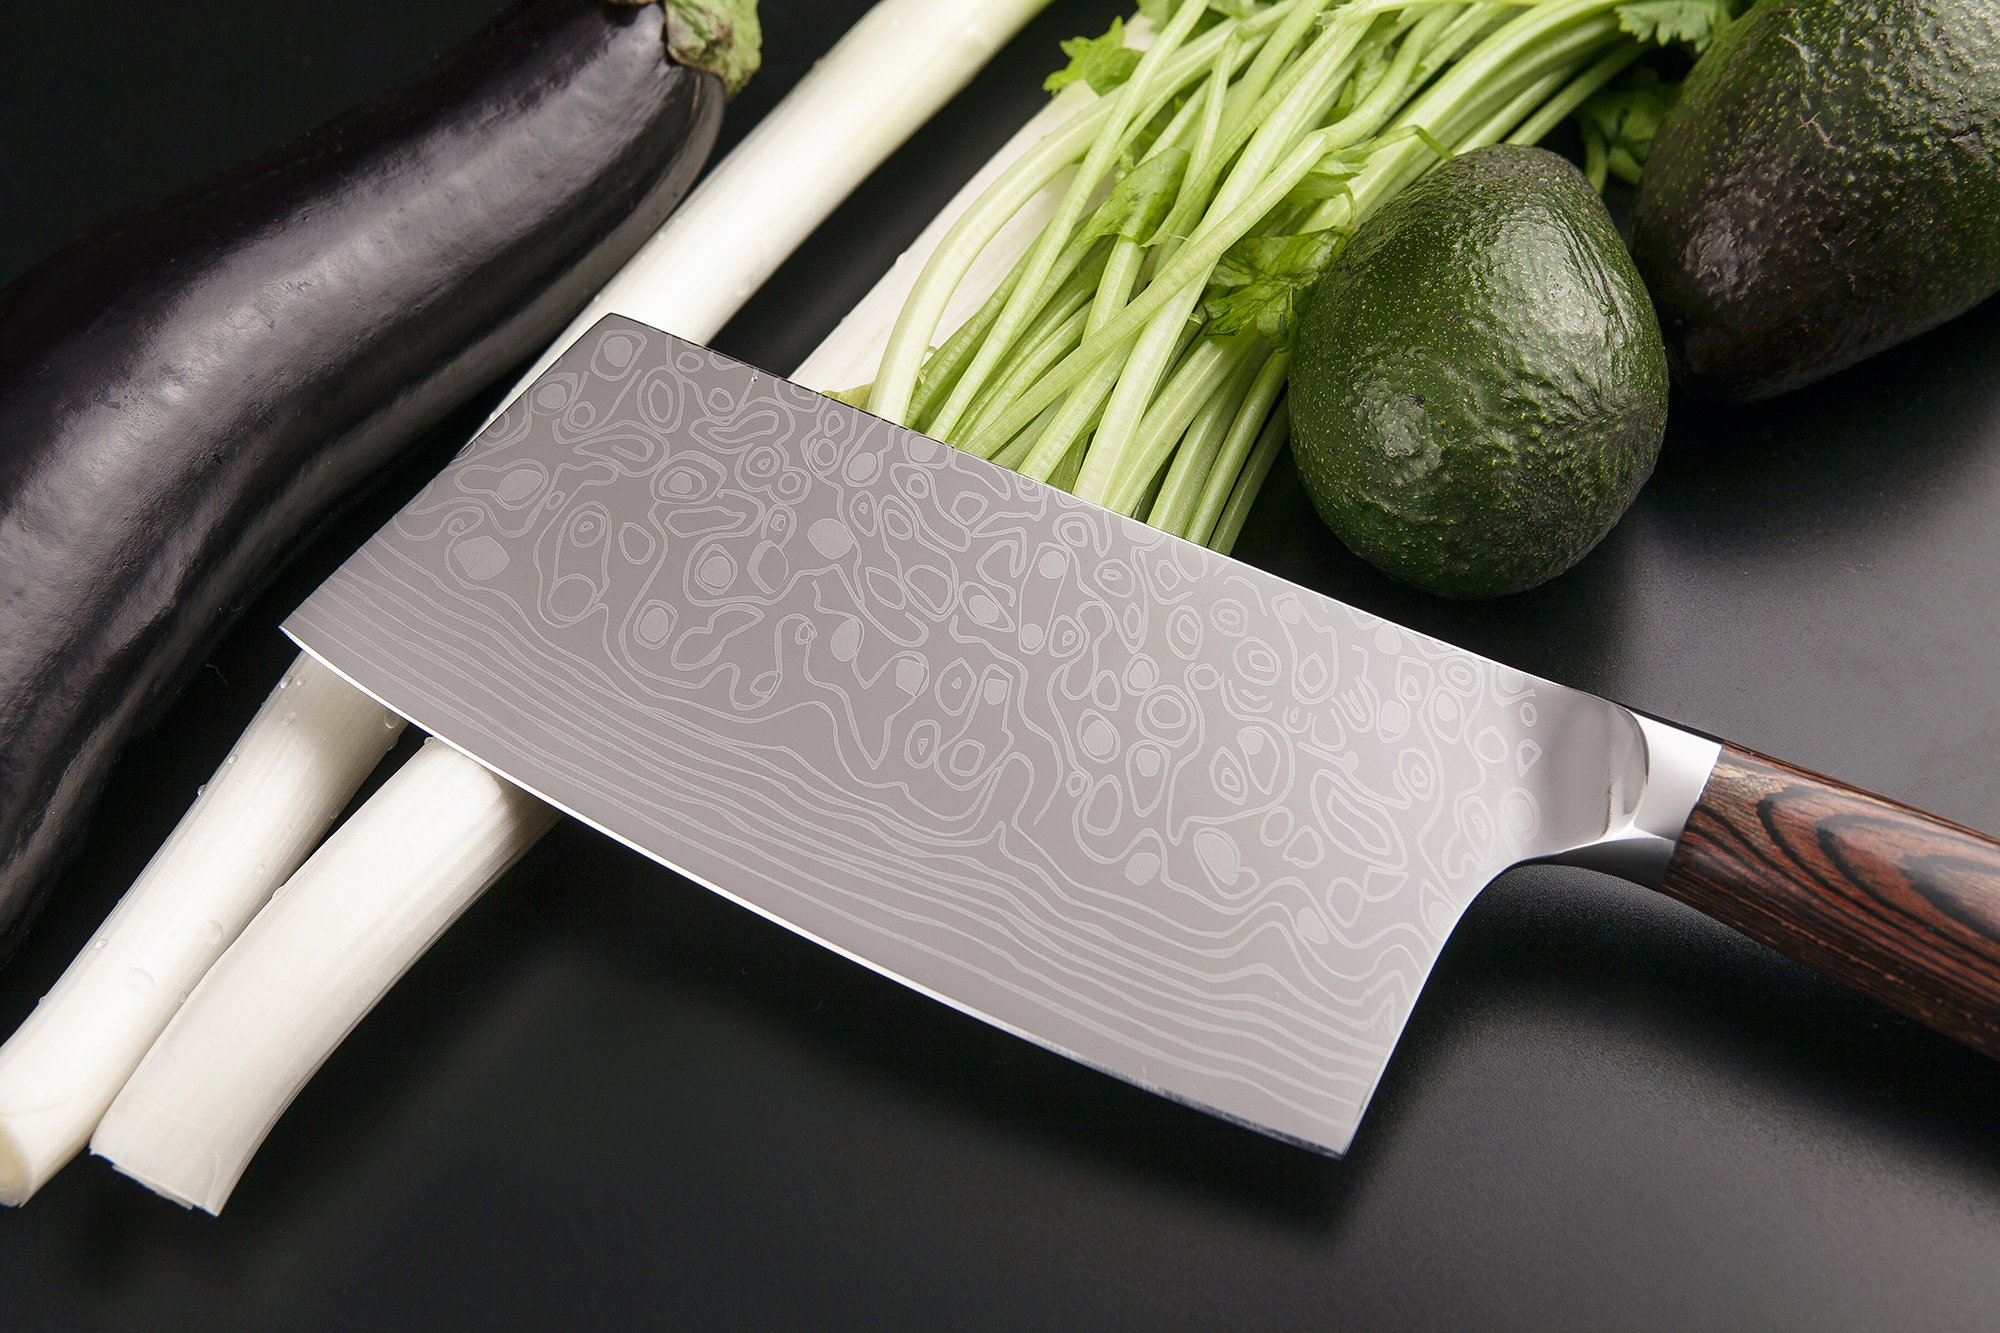 EKUER 7-Inch Chinese Chef's Meat Chopper Cleaver Butcher Vegetable Knife for Home Kitchen or Restaurant,German High Carbon Stainless Steel by EKUER (Image #7)